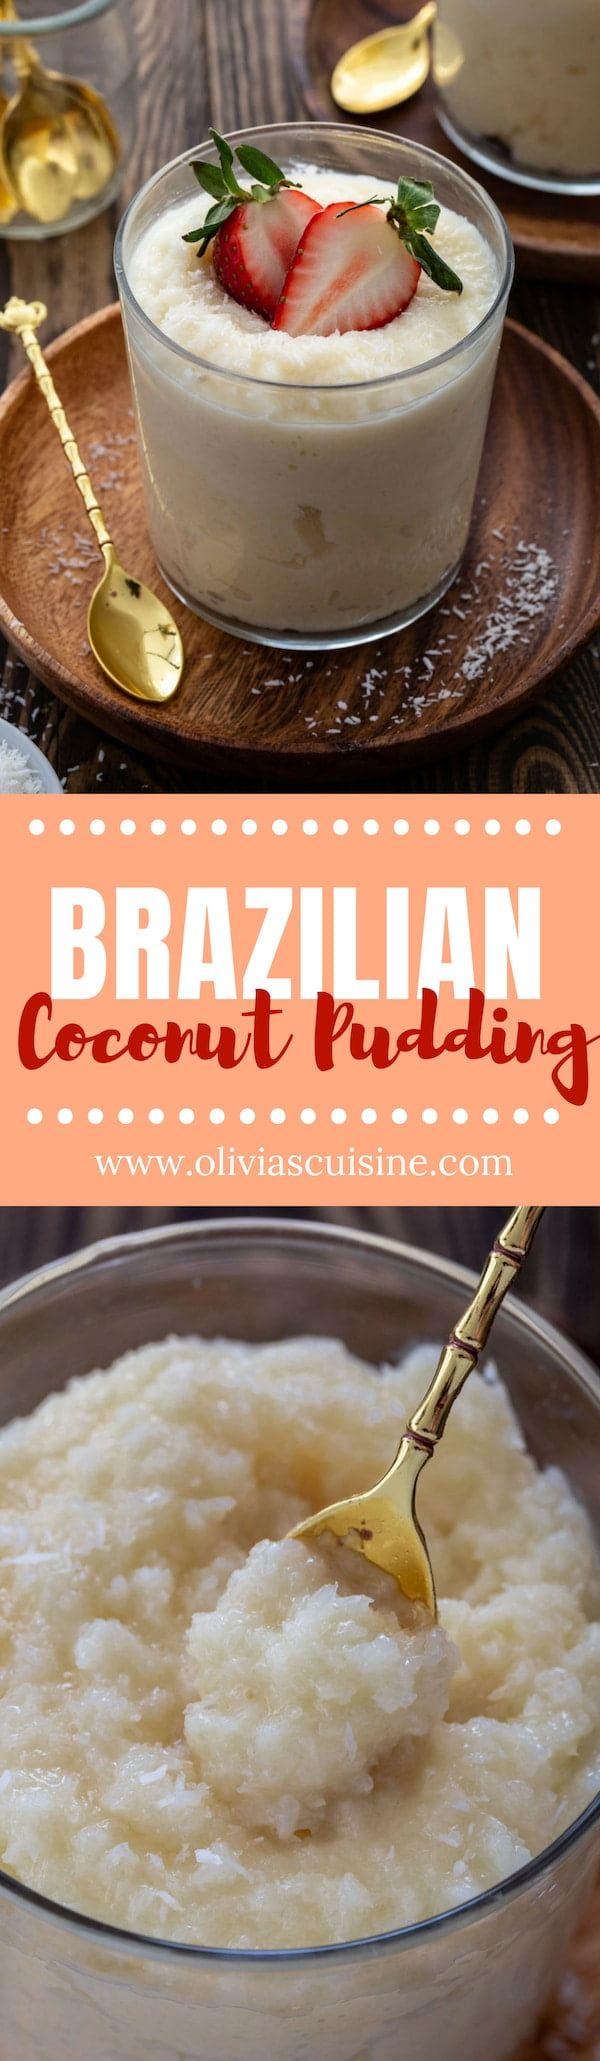 Brazilian Coconut Pudding (Cocada Cremosa) | www.oliviascuisine.com | If you love coconut, this Brazilian Coconut Pudding will knock your socks off! Made with only 5 ingredients and ready in less than 10 minutes, this is guaranteed to satisfy your sweet tooth. (Recipe and food photography by @oliviascuisine). #Brazil #brazilian #coconut #pudding